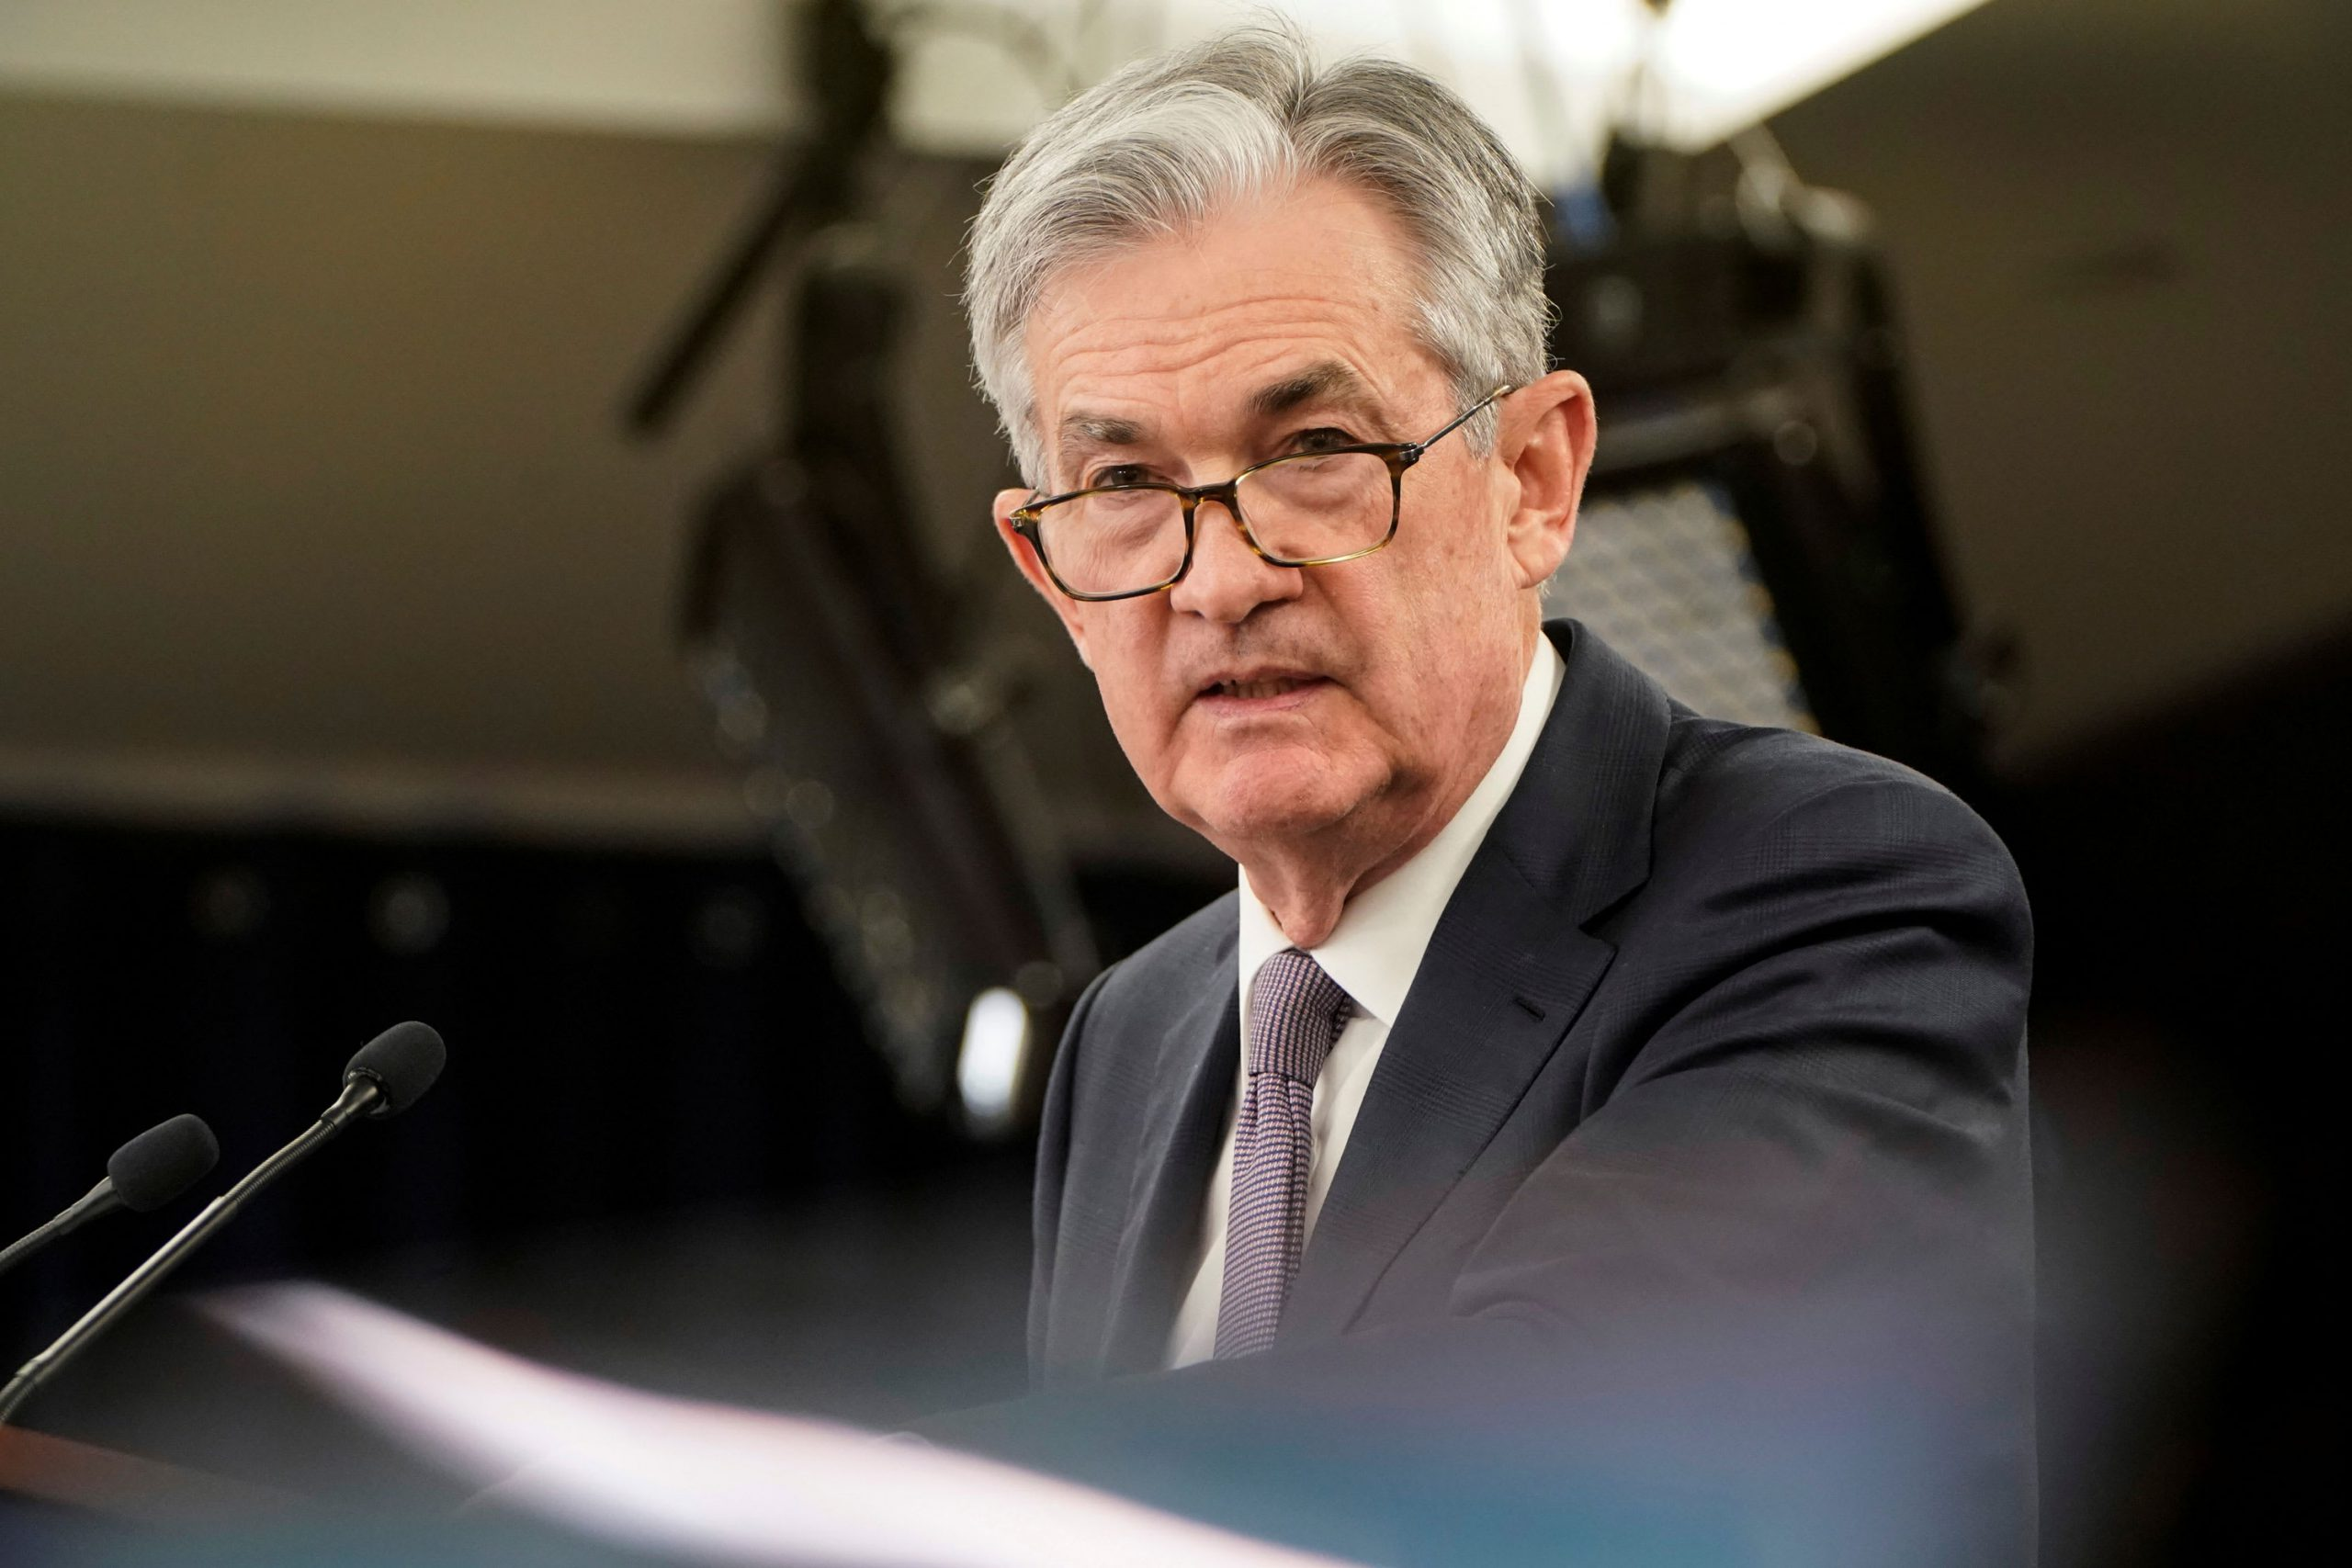 Some Fed members worried that keeping rates low would encourage too much risk-taking, minutes show